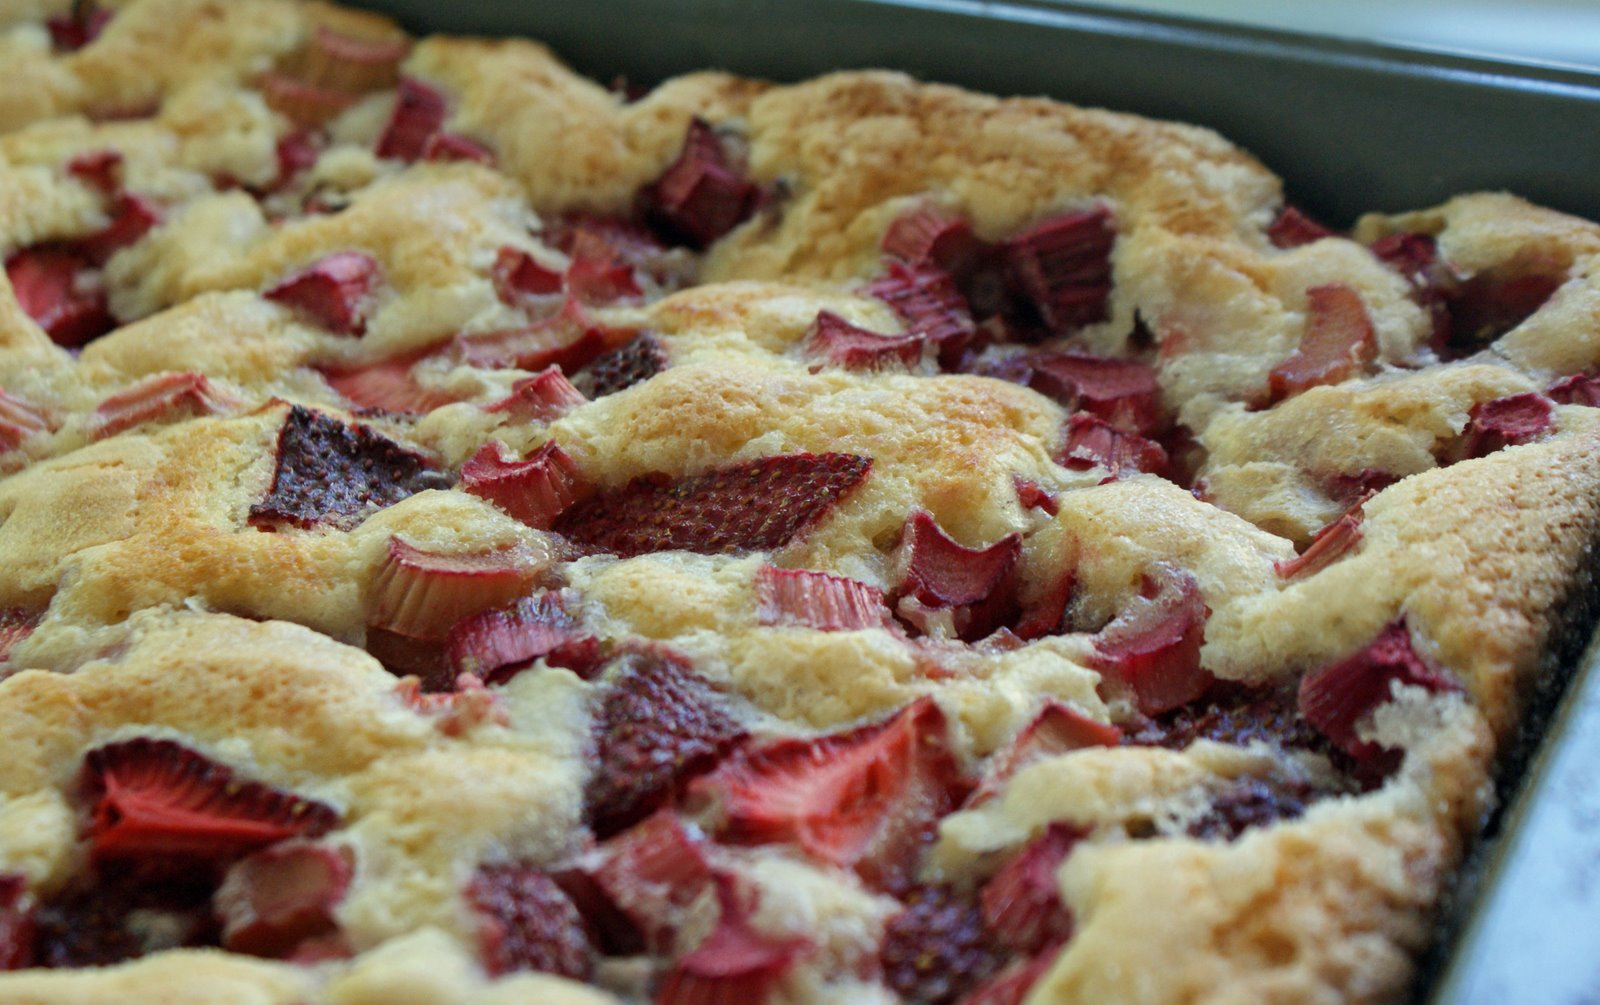 Rhubarb Cobbler Recipe Cake Mix